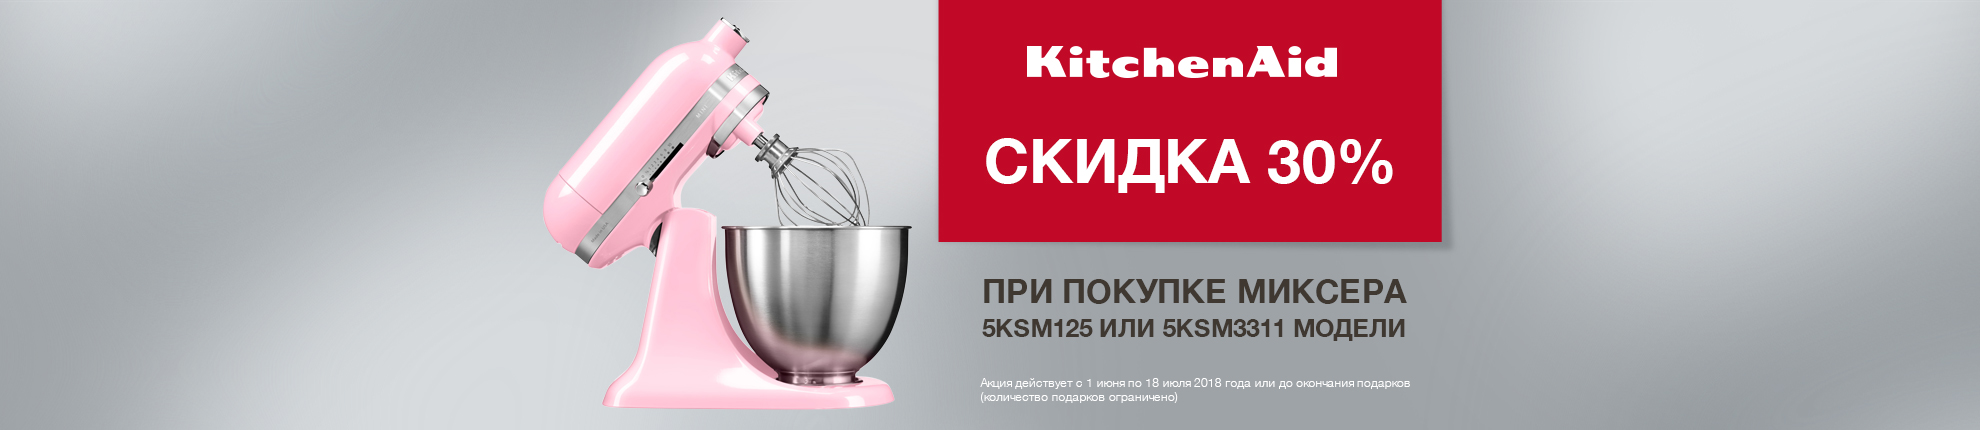 Акция KitchenAid скидка 30% на миксер